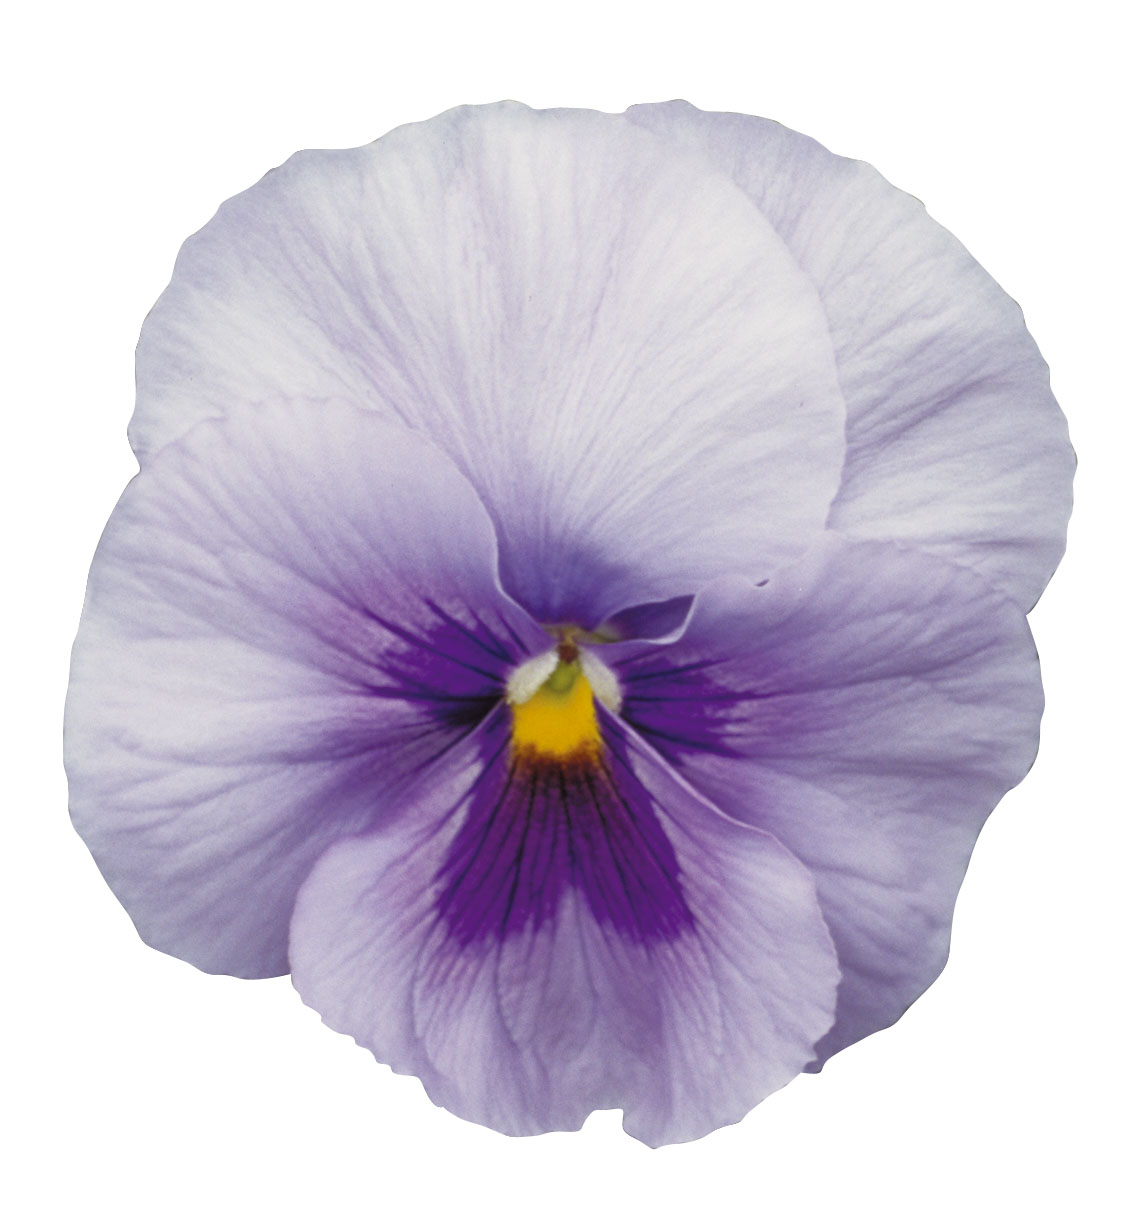 Dynamite Blue Centre F1 Pansy Short Lived Seeds Kings Seeds